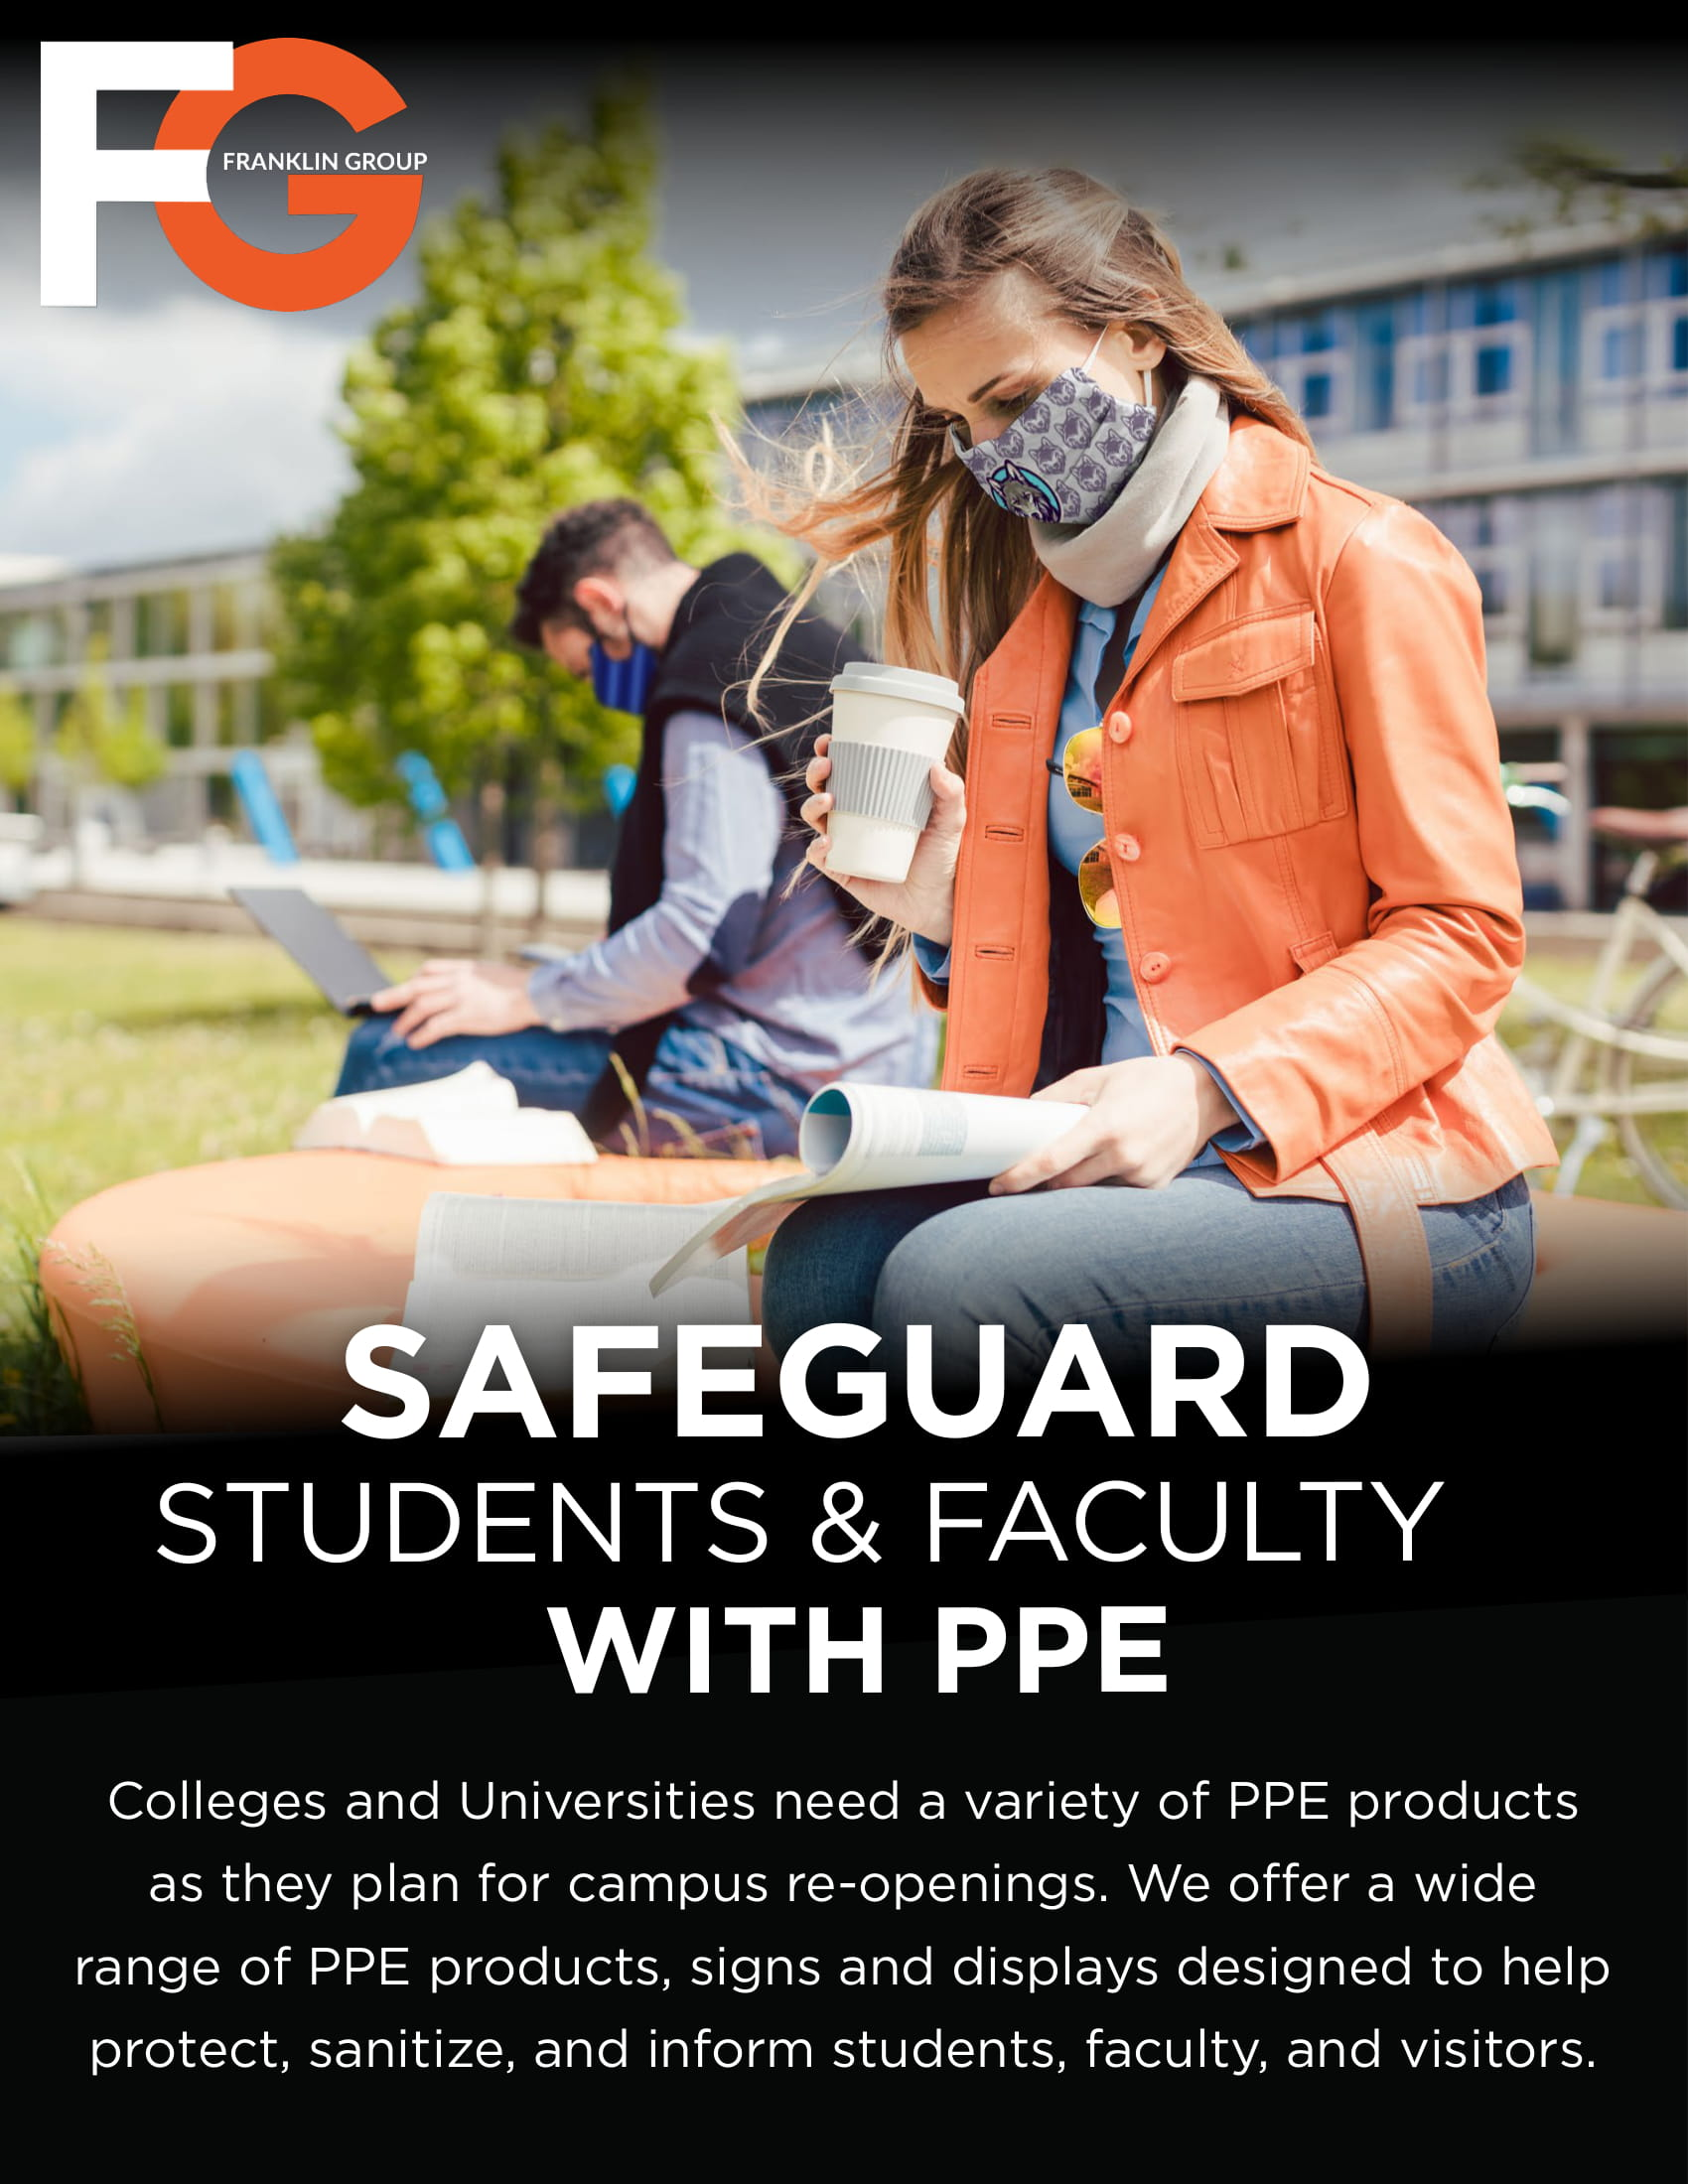 Safeguard College, Universities and Faculty with PPE